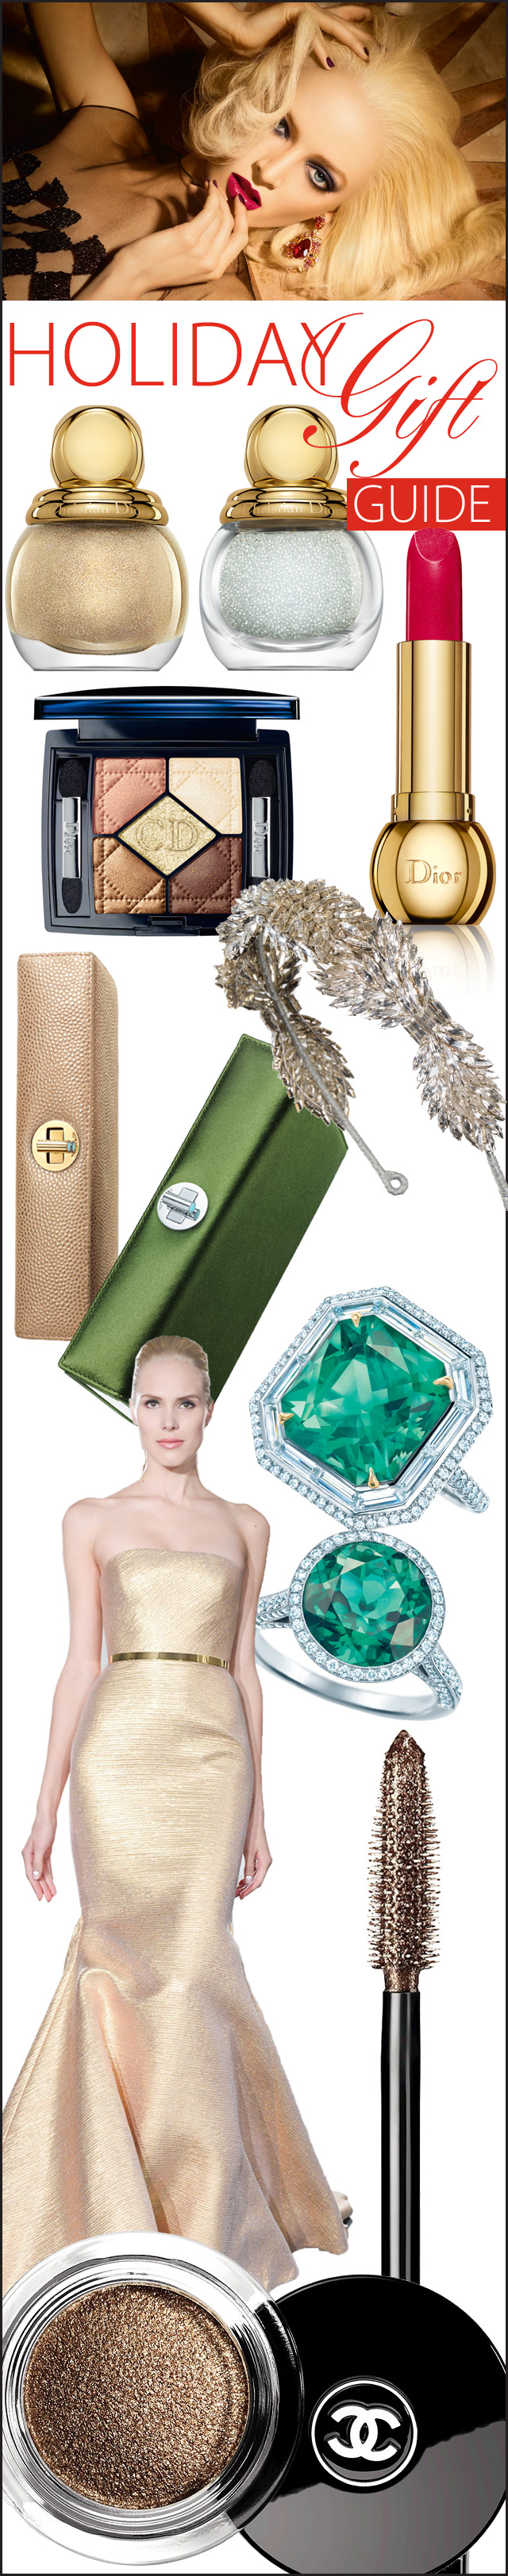 Holiday Gift Guide, Chanel, Dior, Tiffany & Co., Romona Keveza, Jenny Packham